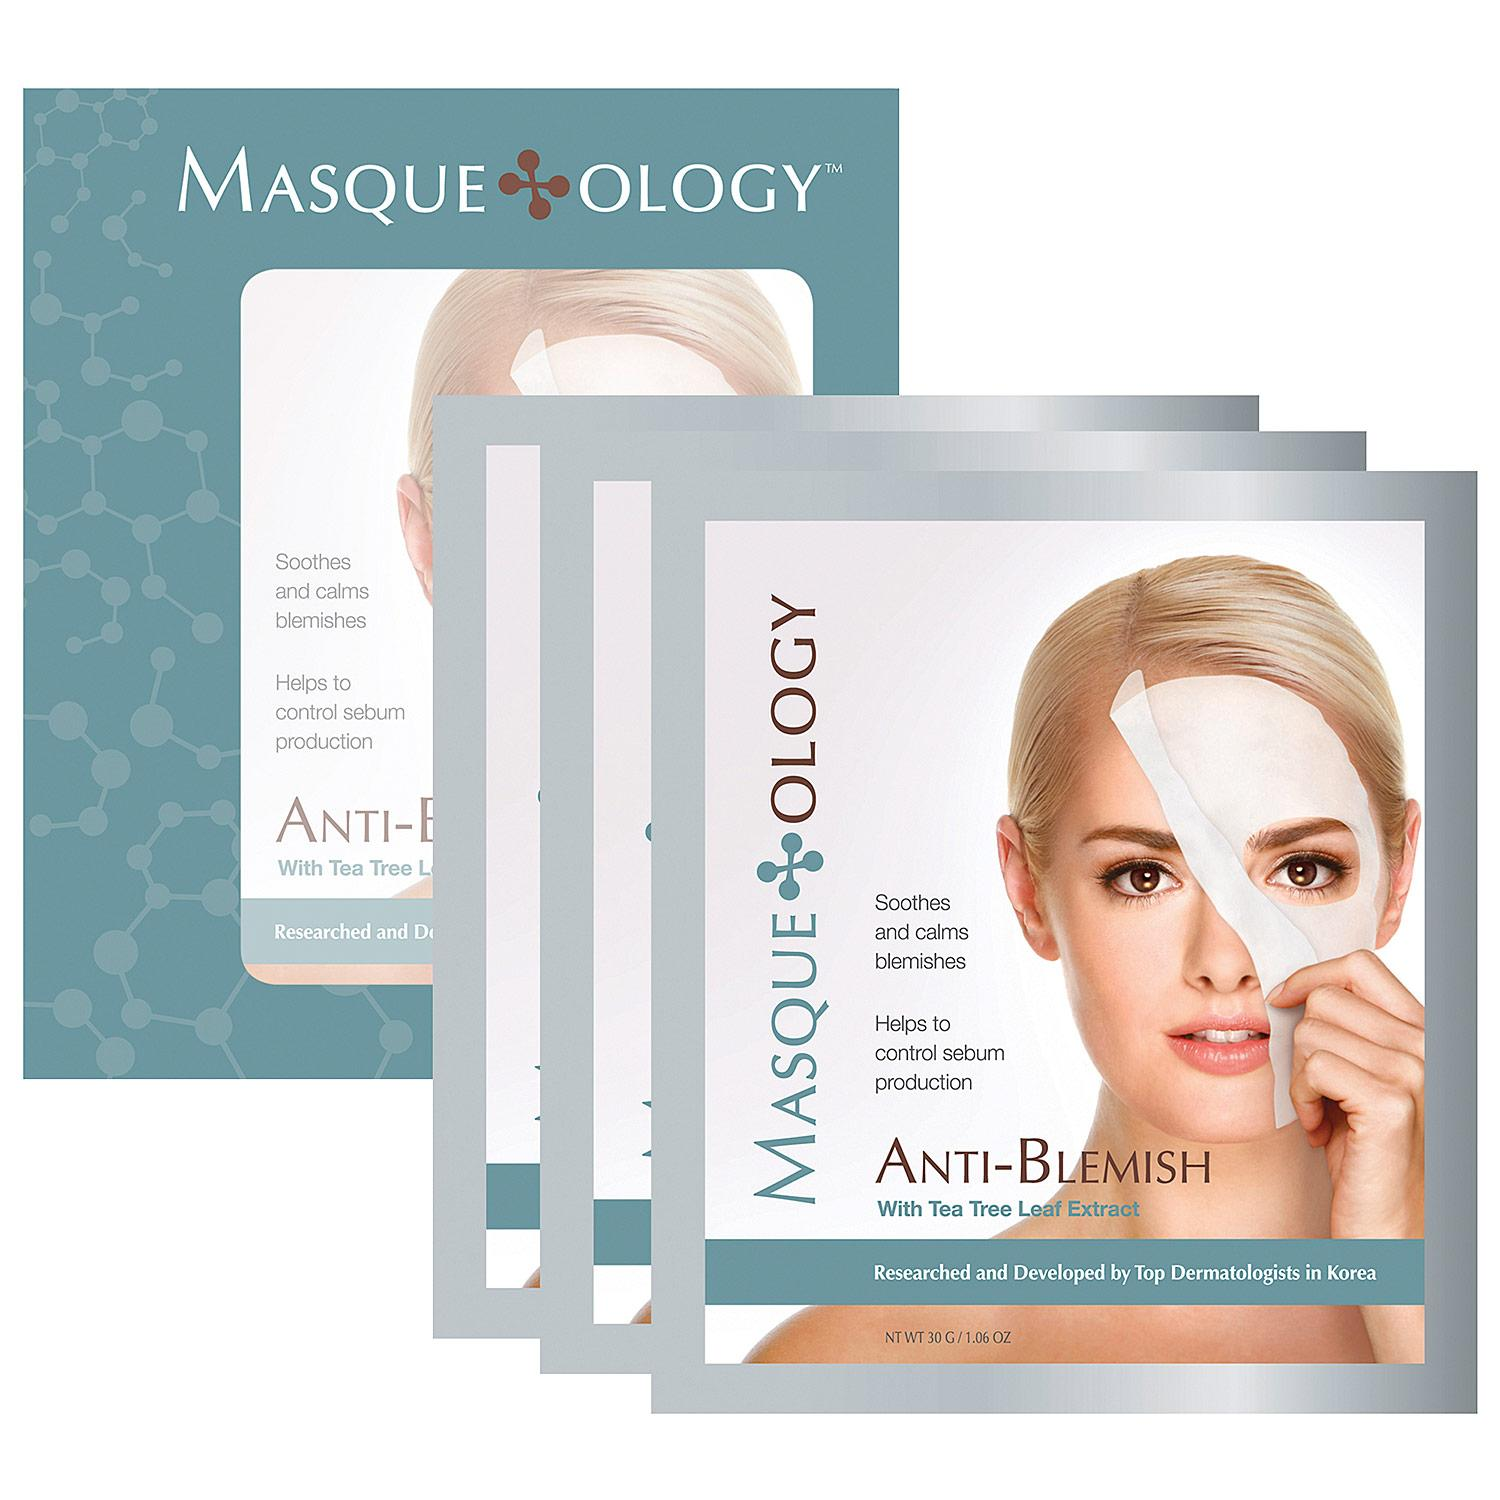 Anti-Blemish Masque With Tea Tree Leaf Extract